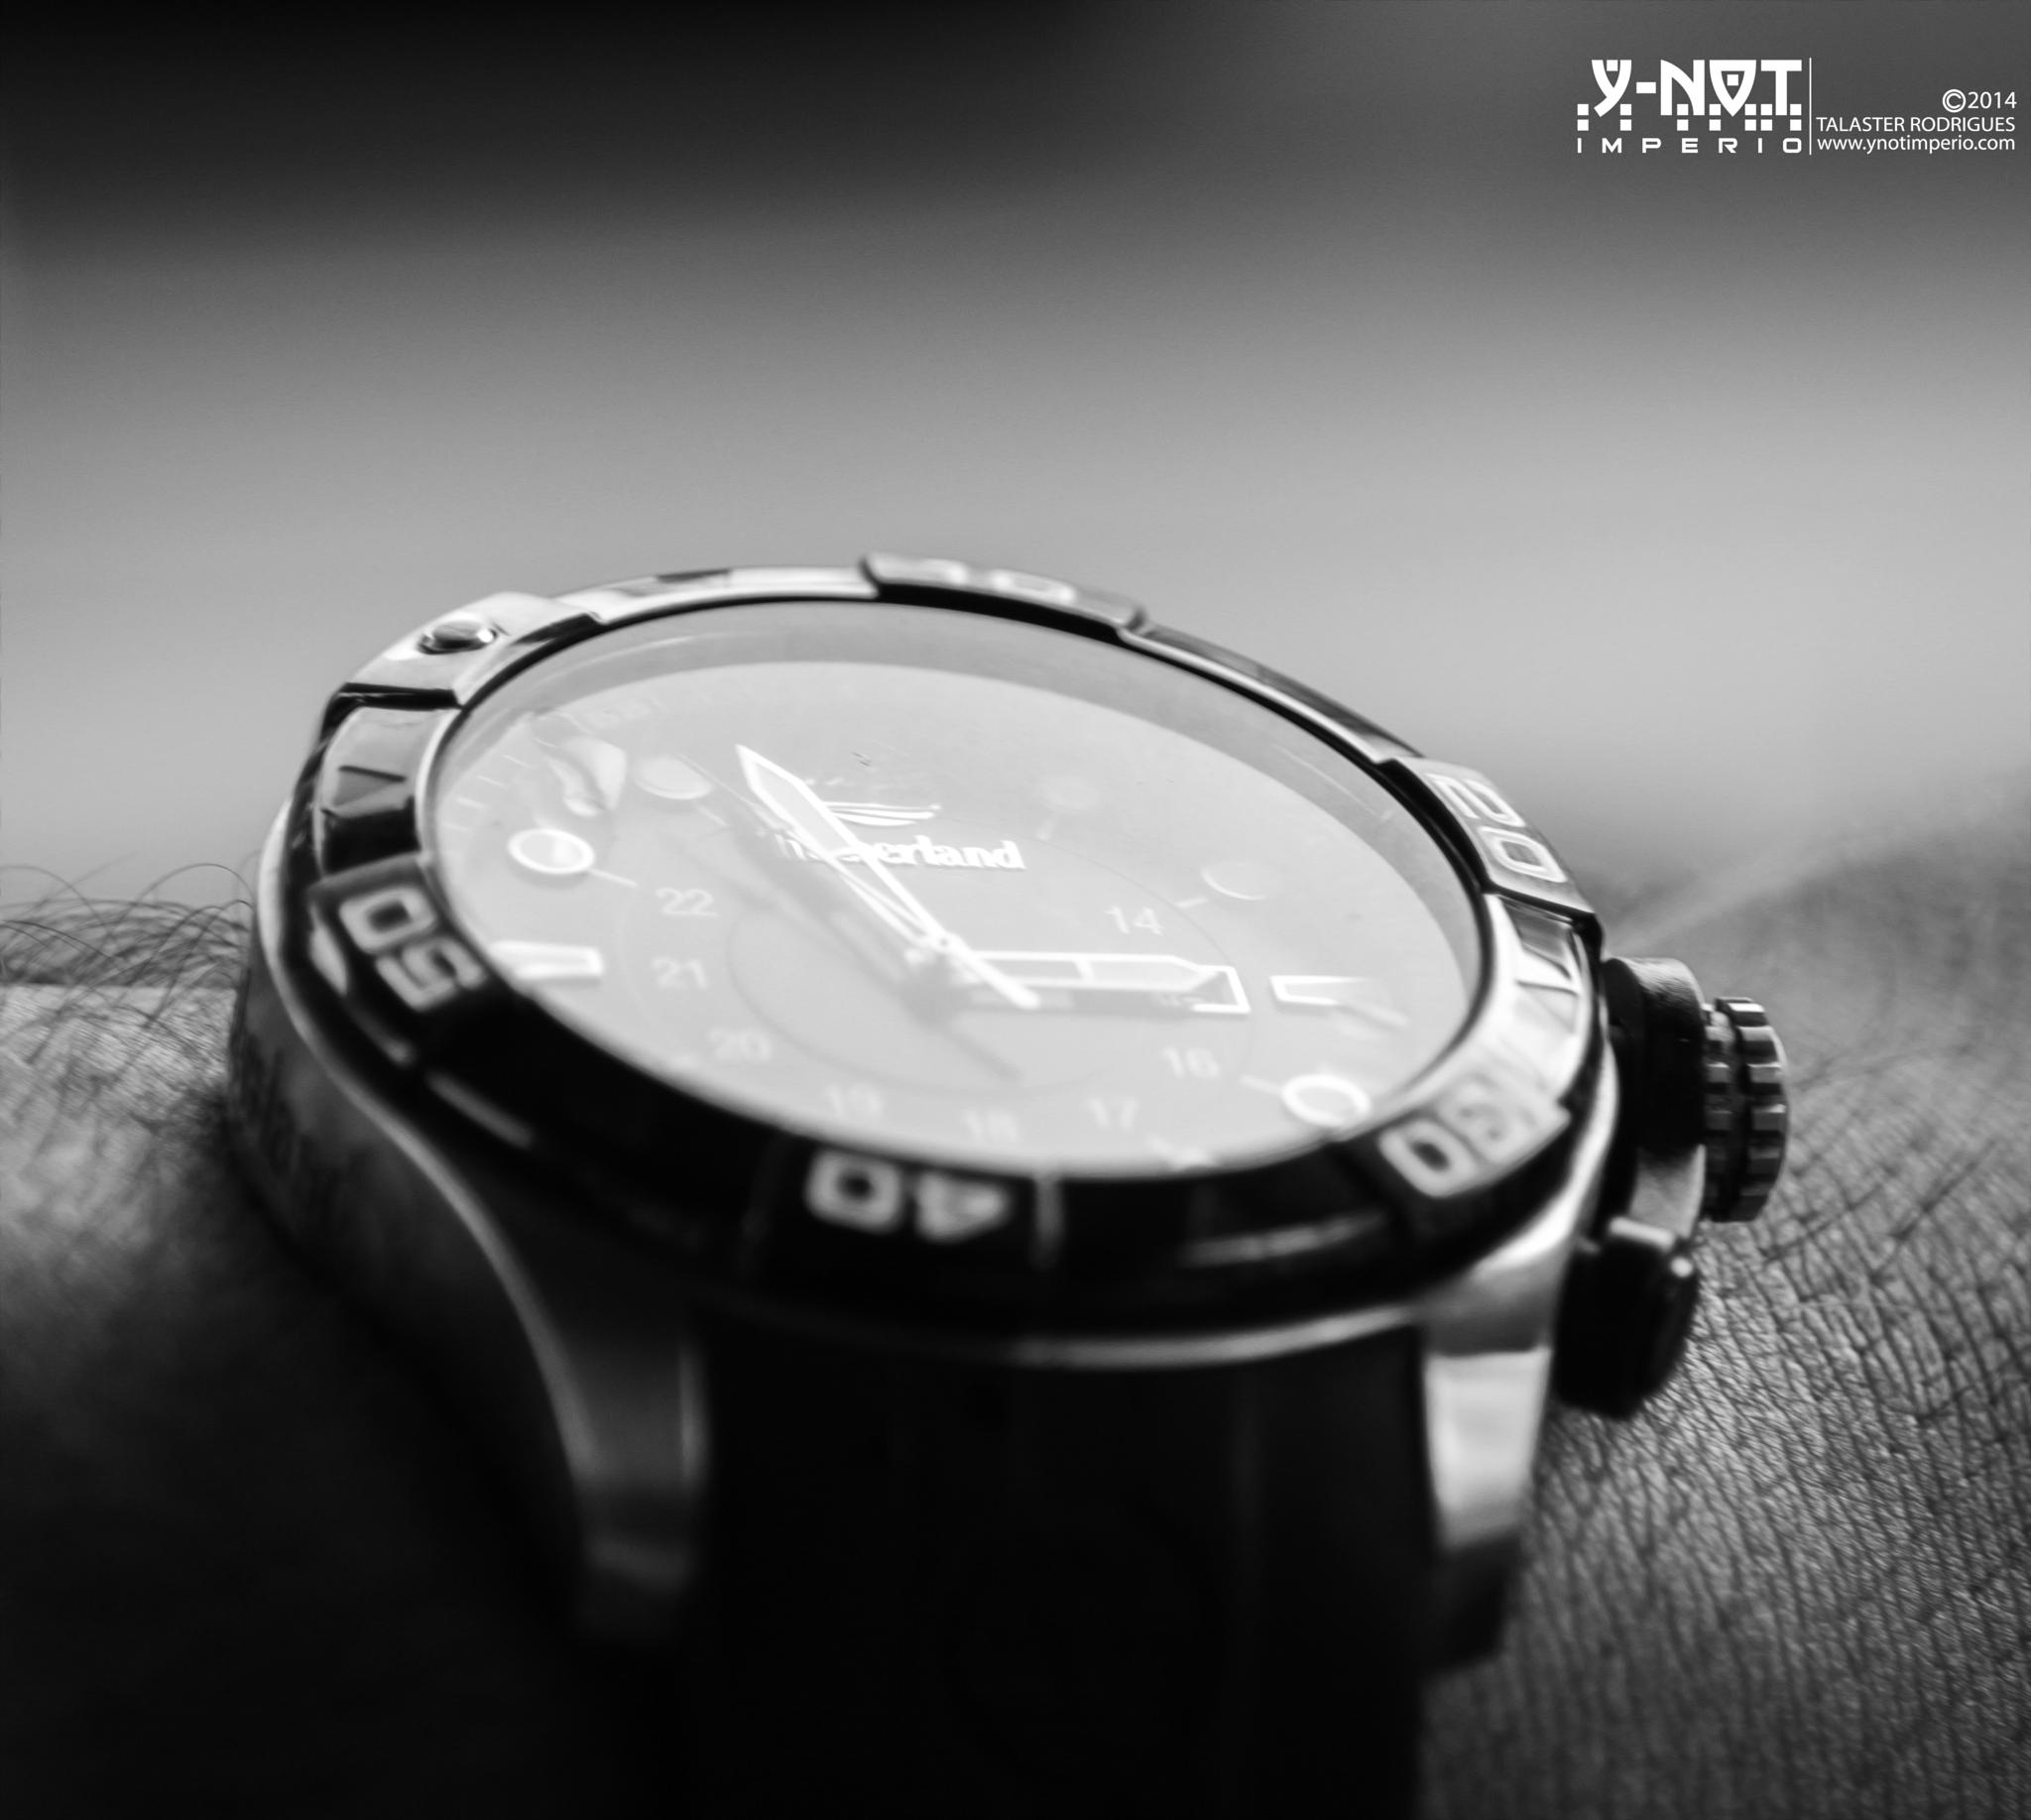 Timberland watch by Talaster Rodrigues